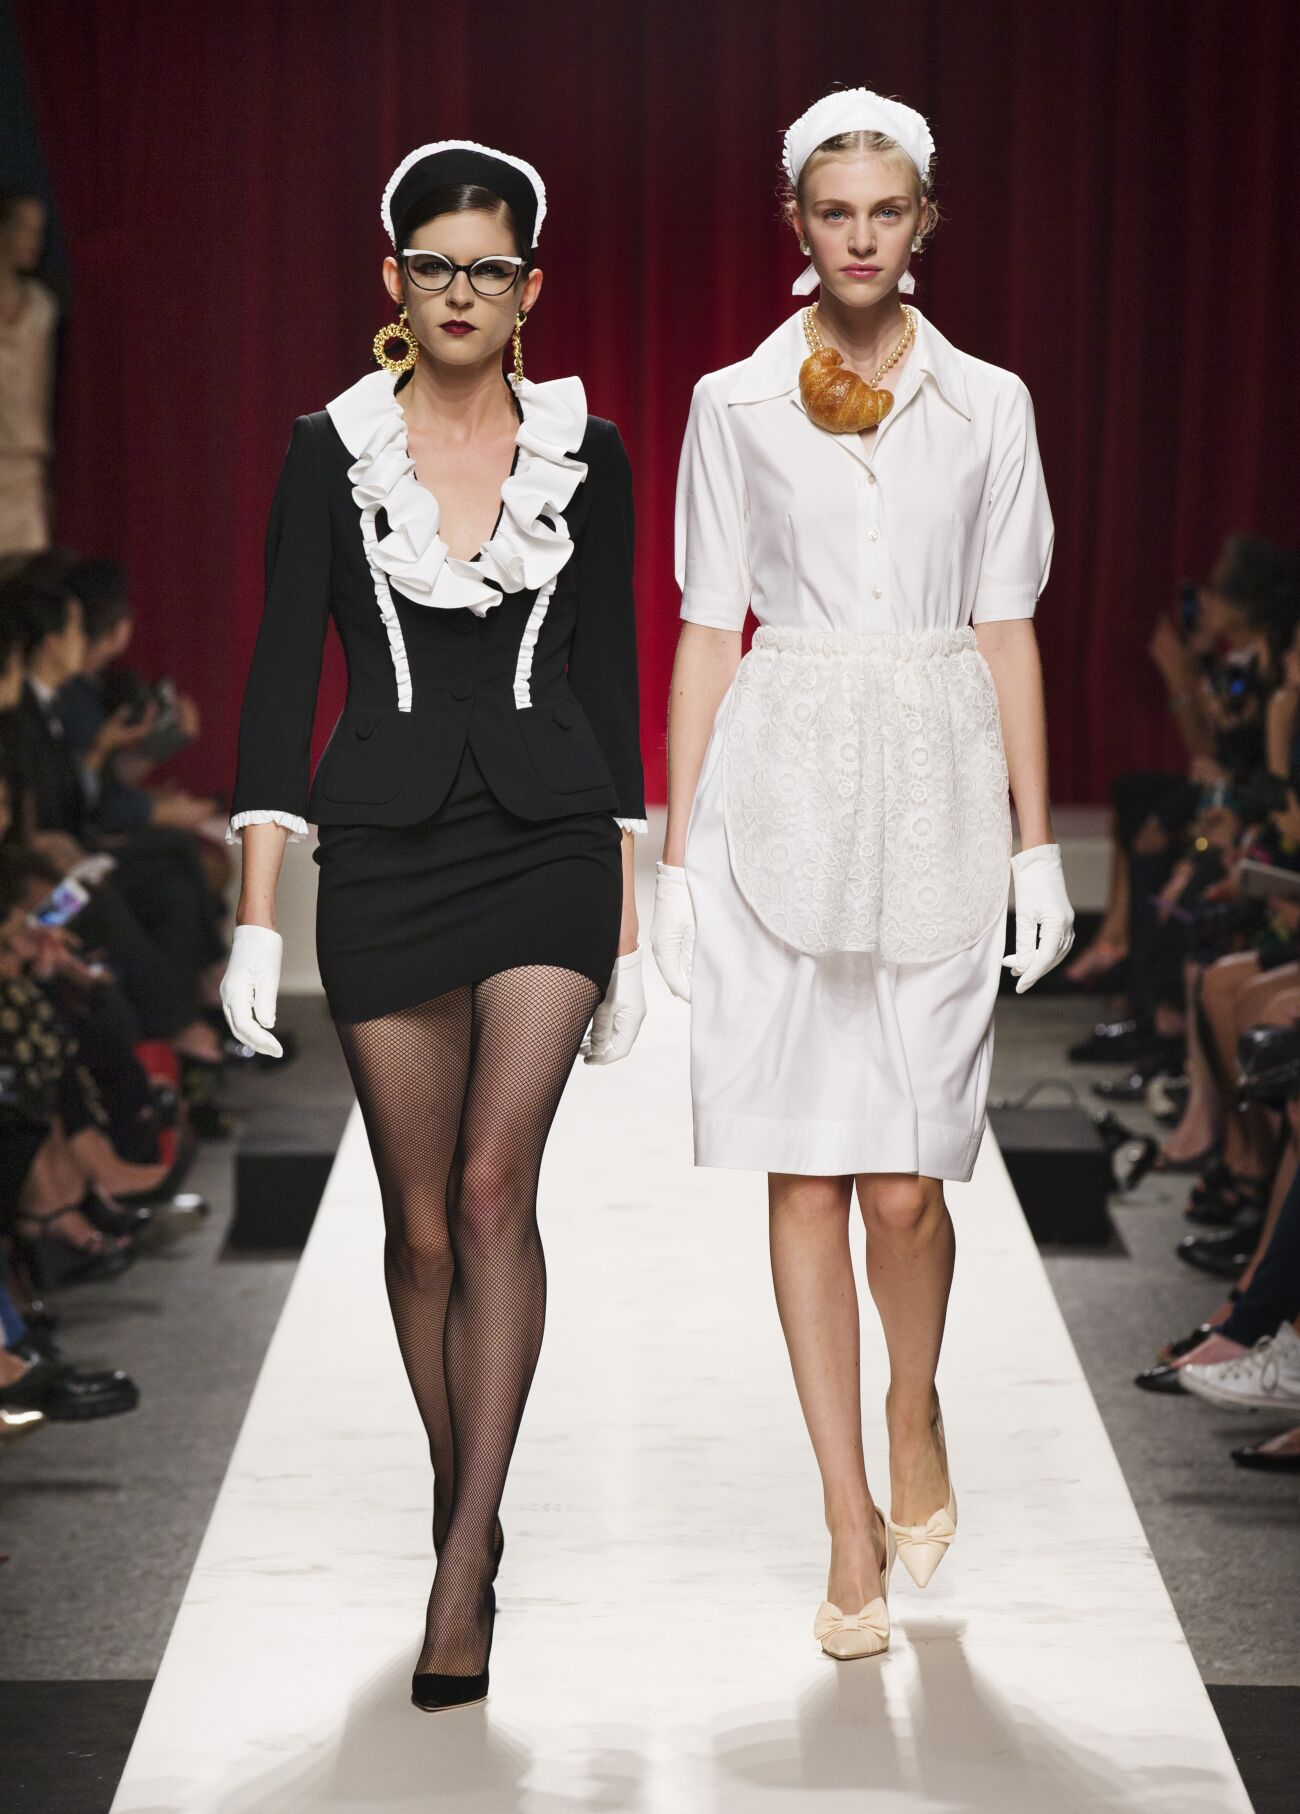 Spring 2014 Woman Fashion Show Moschino